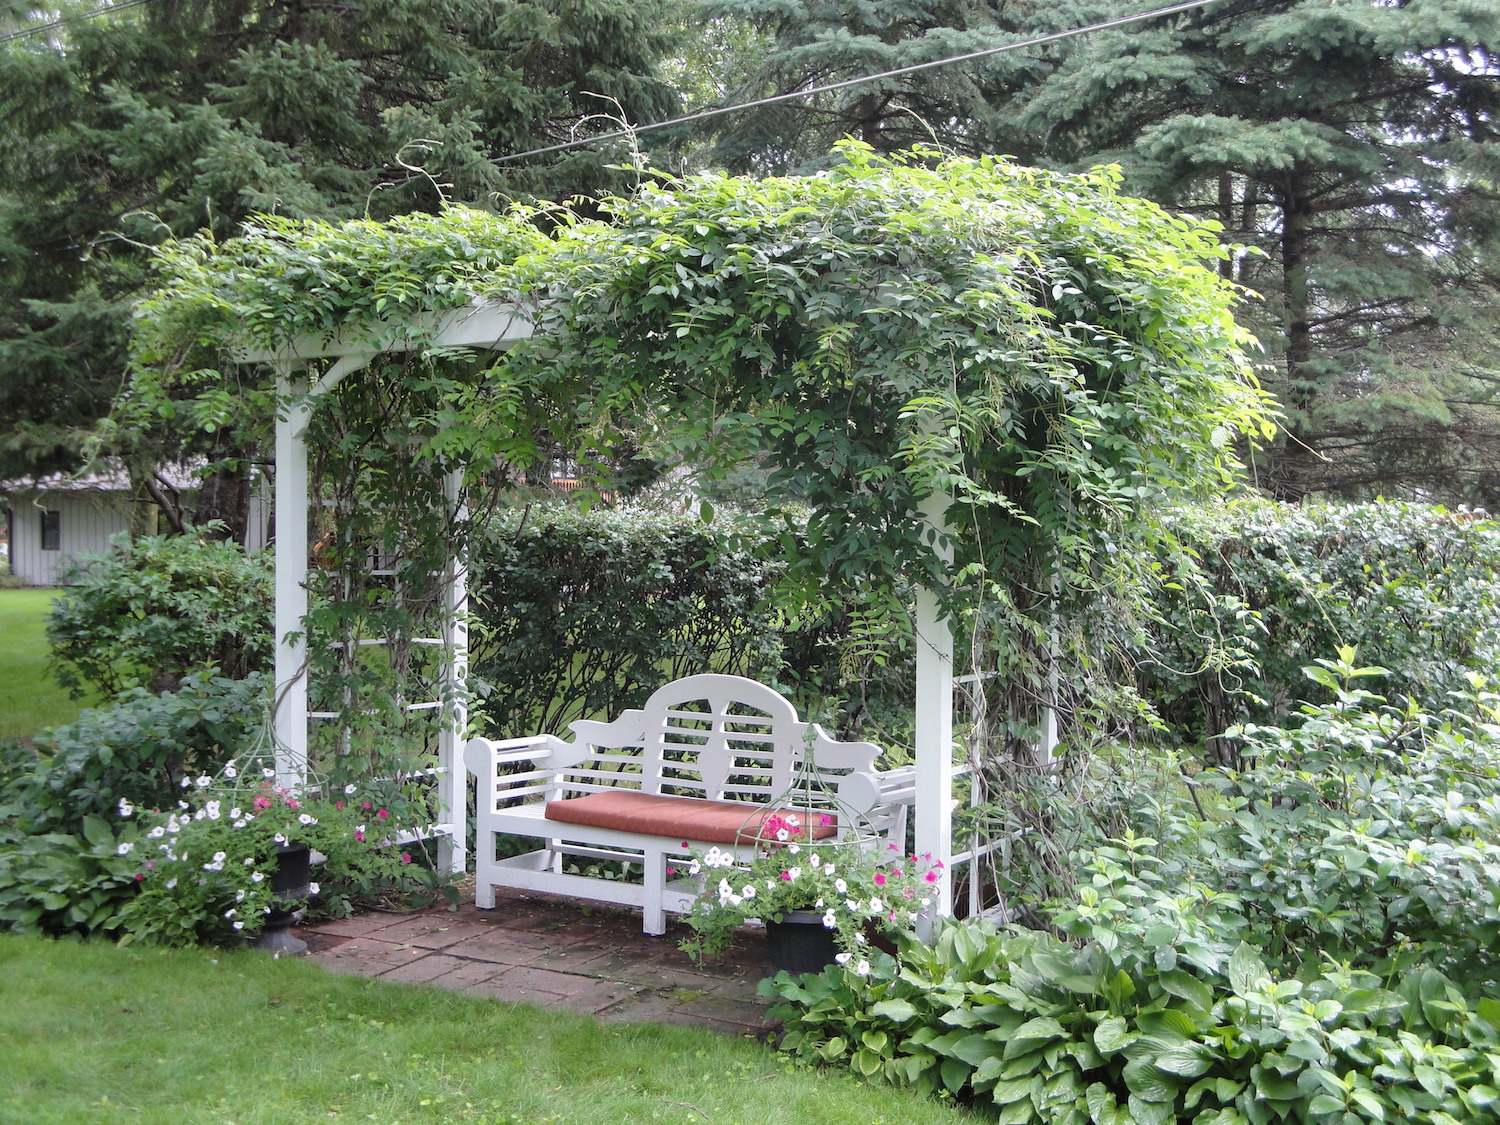 Garden seating with flowers